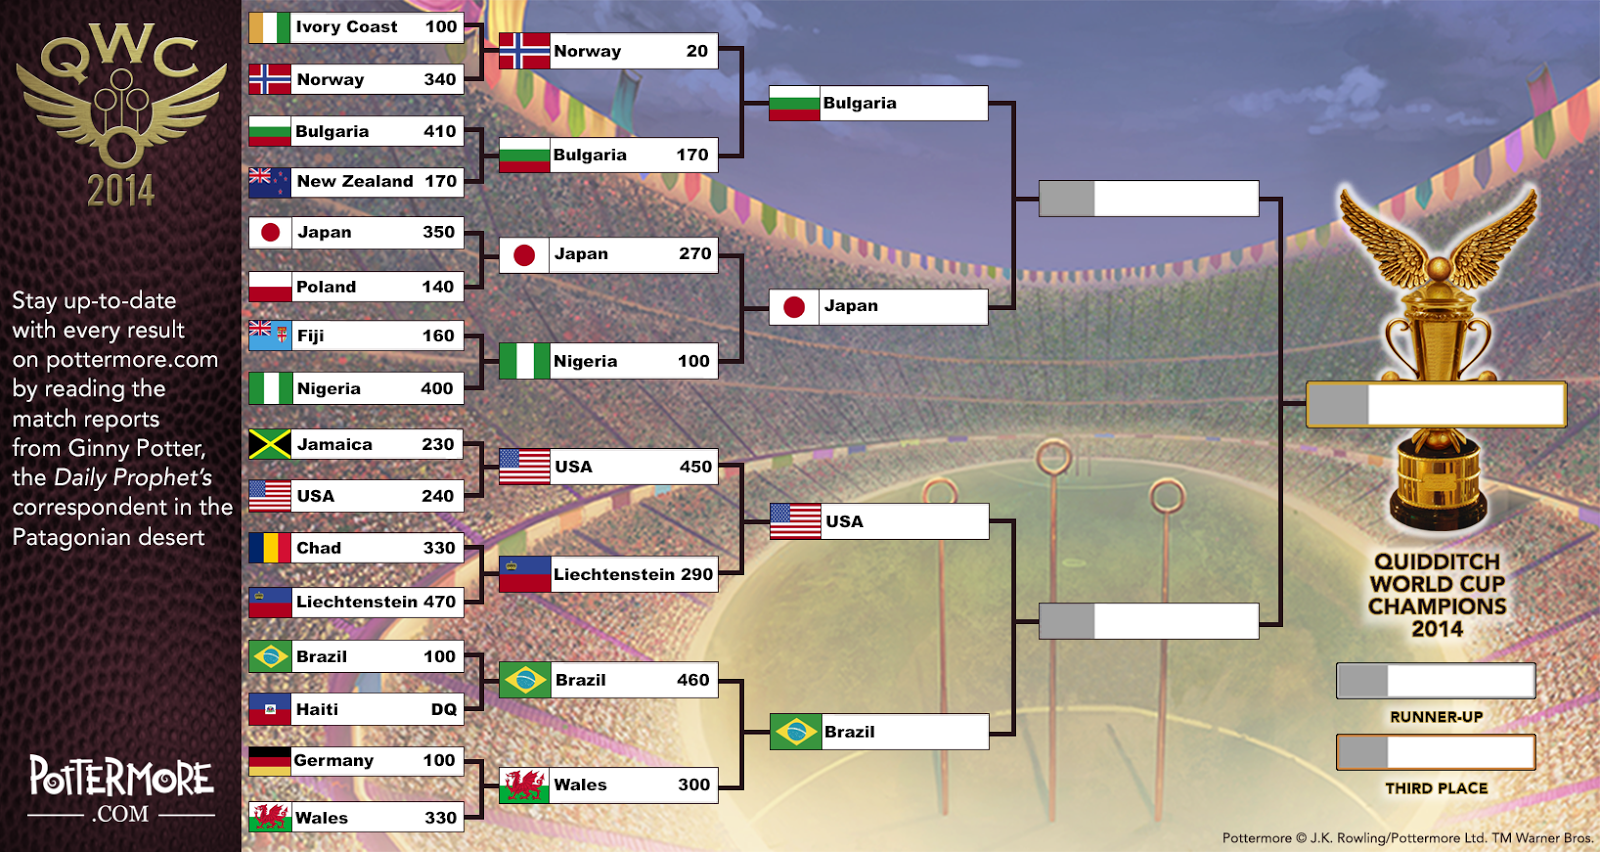 Pottermore Insider: The 2014 Quidditch World Cup: Route to the Final